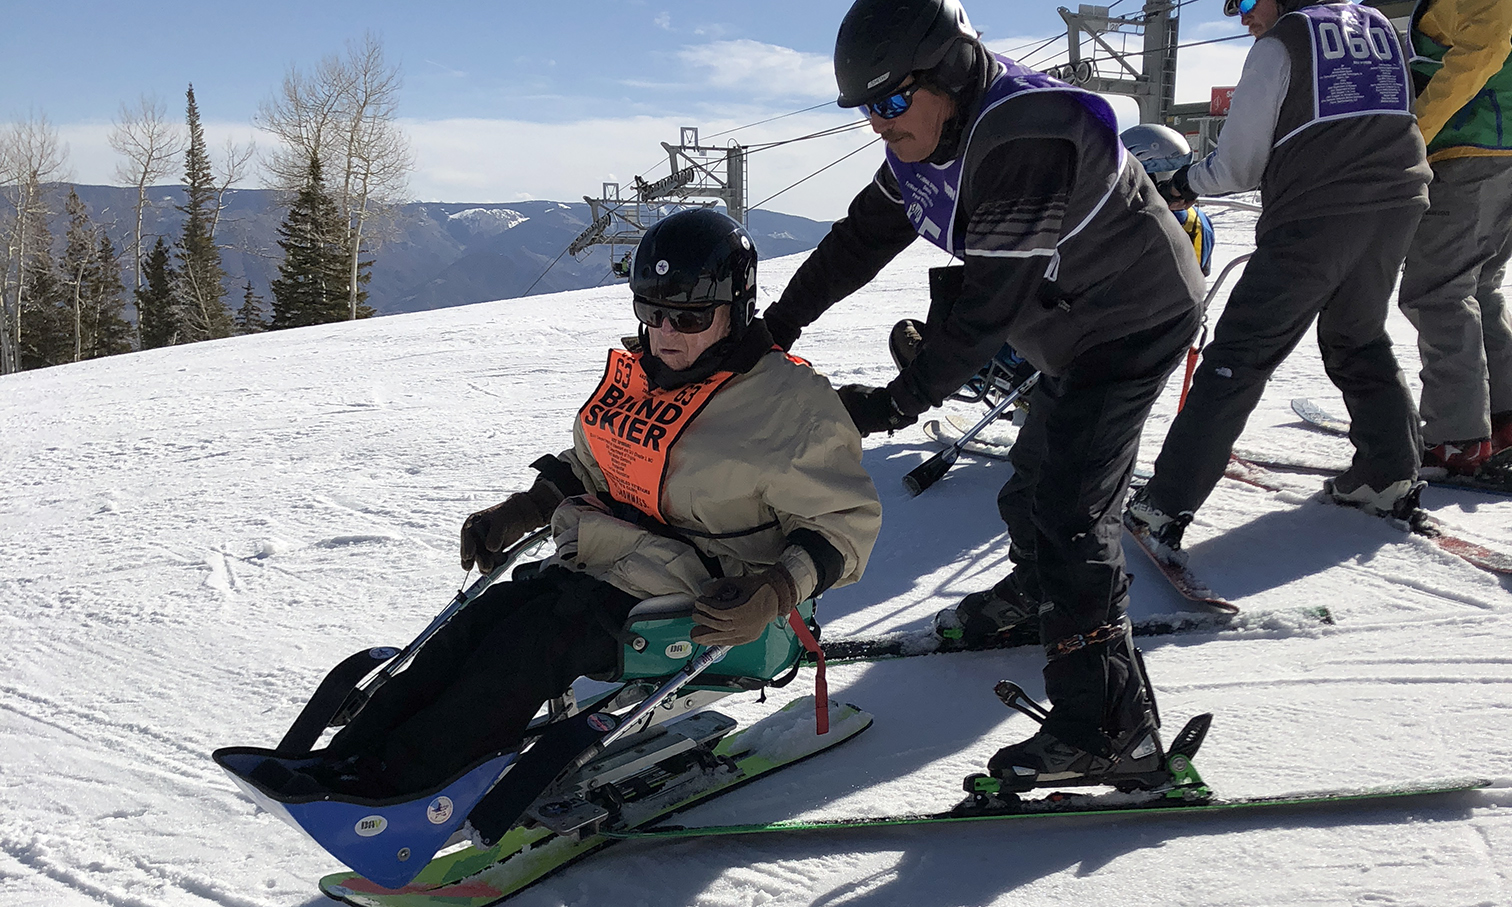 Wwii Veteran Skis For The First Time At Winter Sports